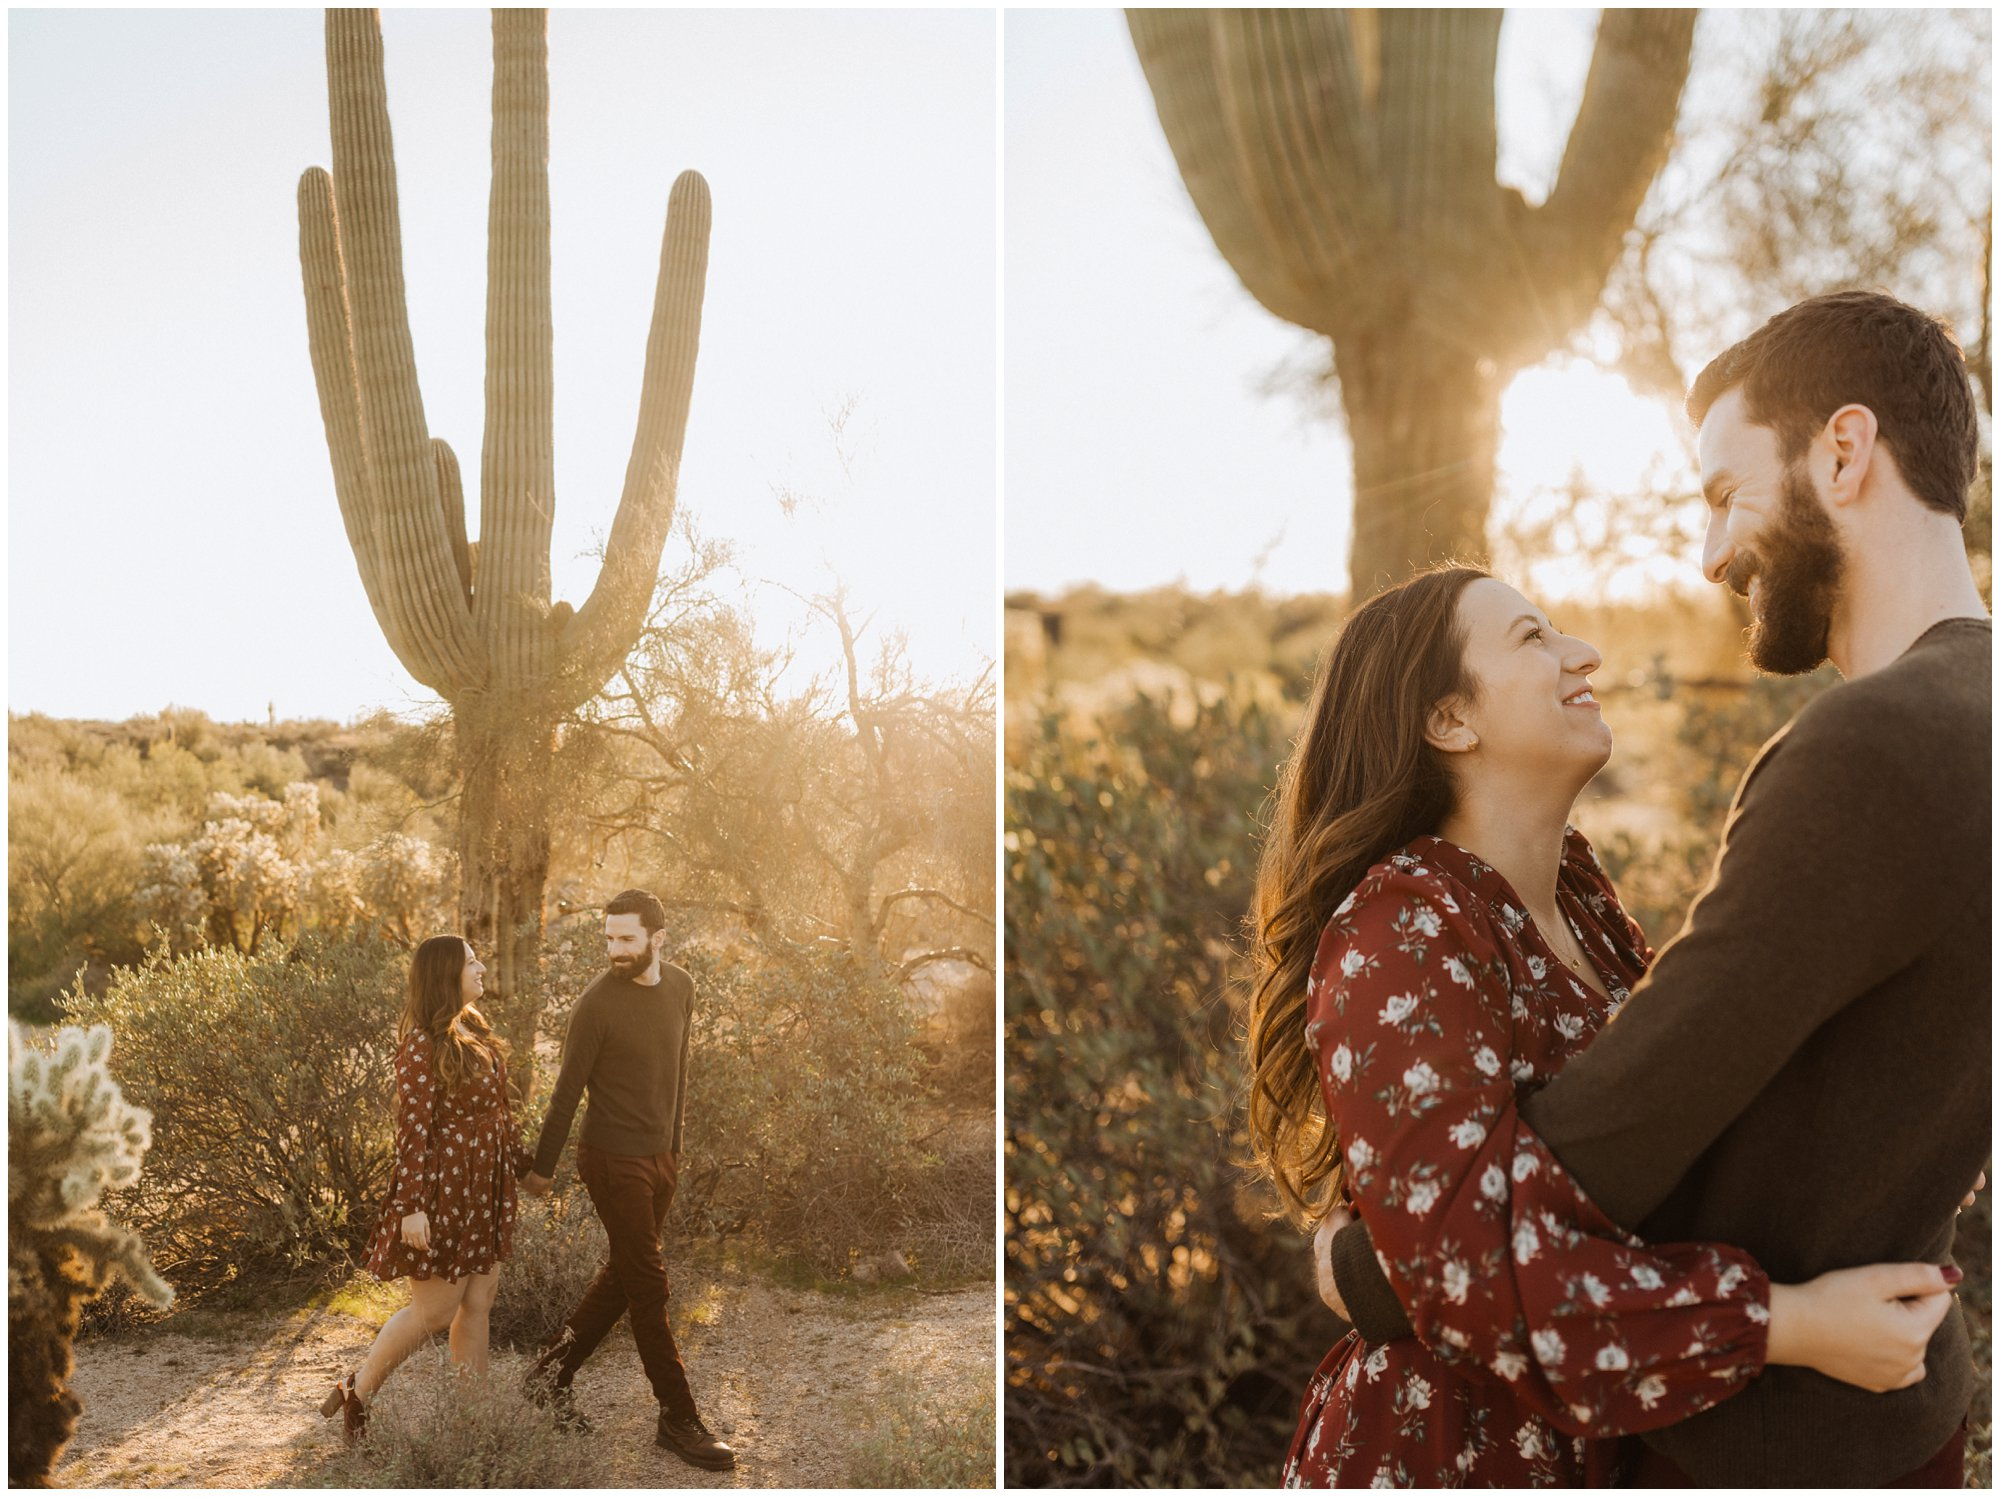 Arizona Desert Engagement Session - Megan + Geno - Ashtyn Nicole Photo_0011.jpg